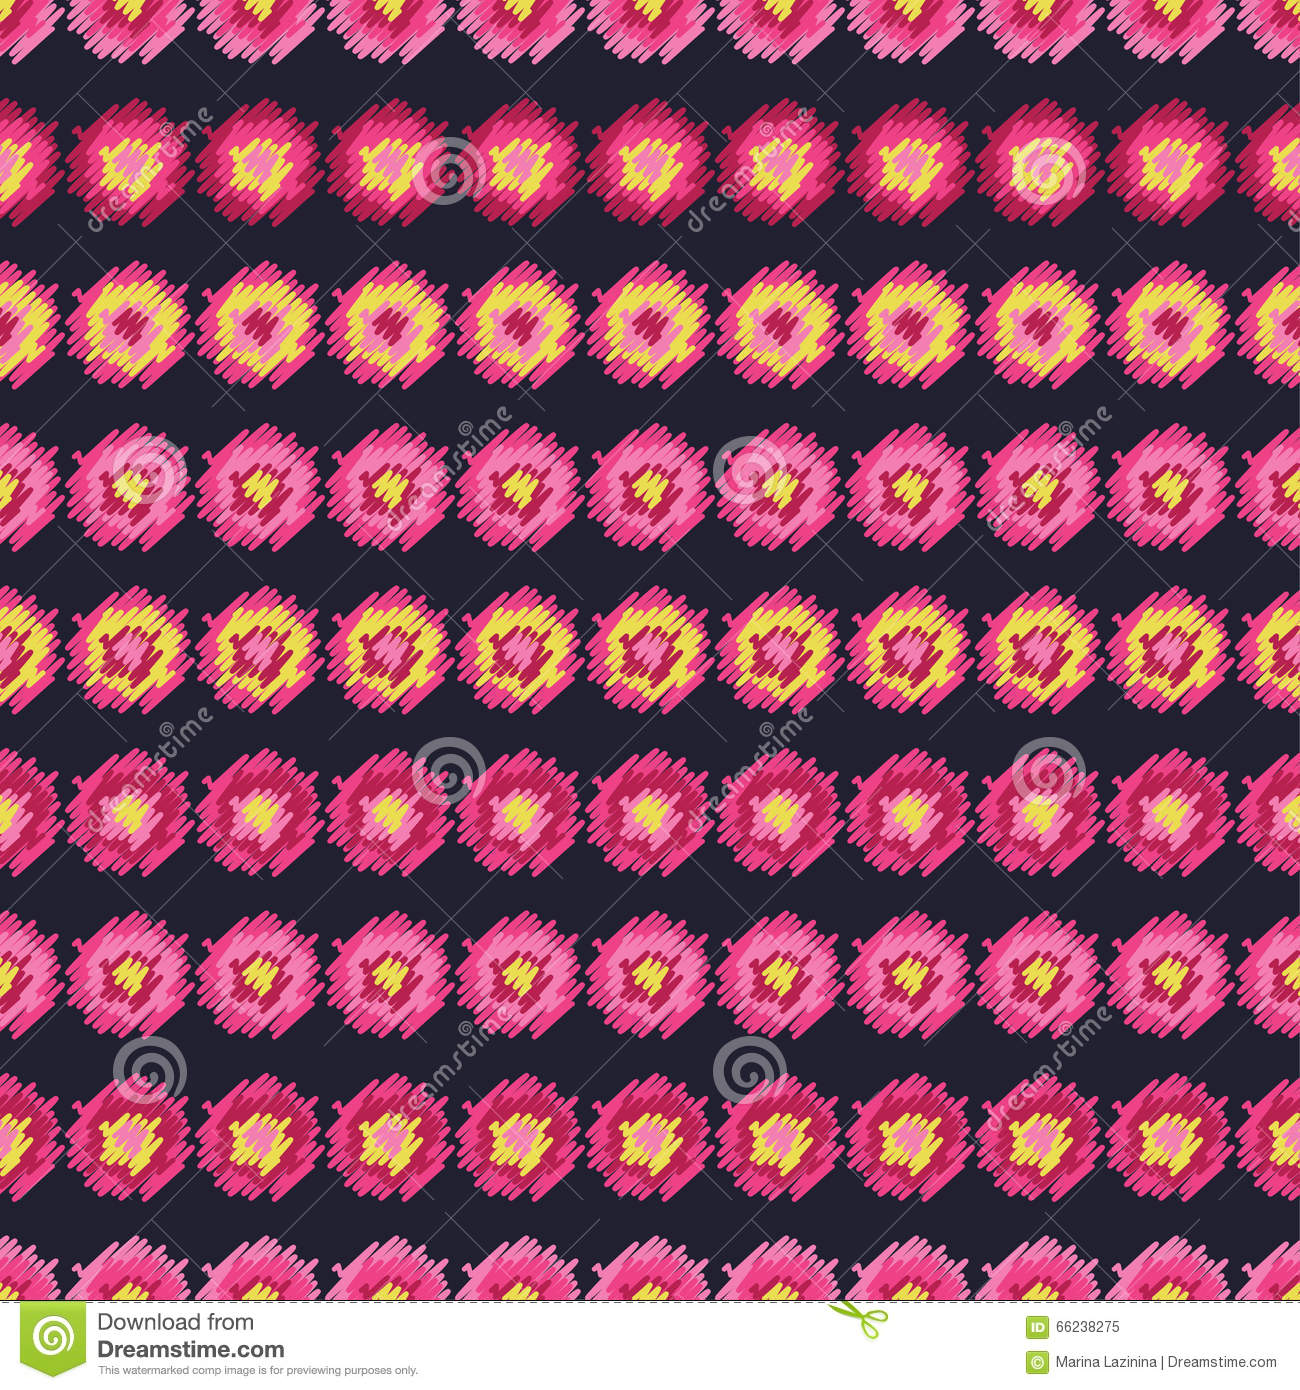 Turkish Design Wallpaper : Ethnic boho seamless pattern print repeating background